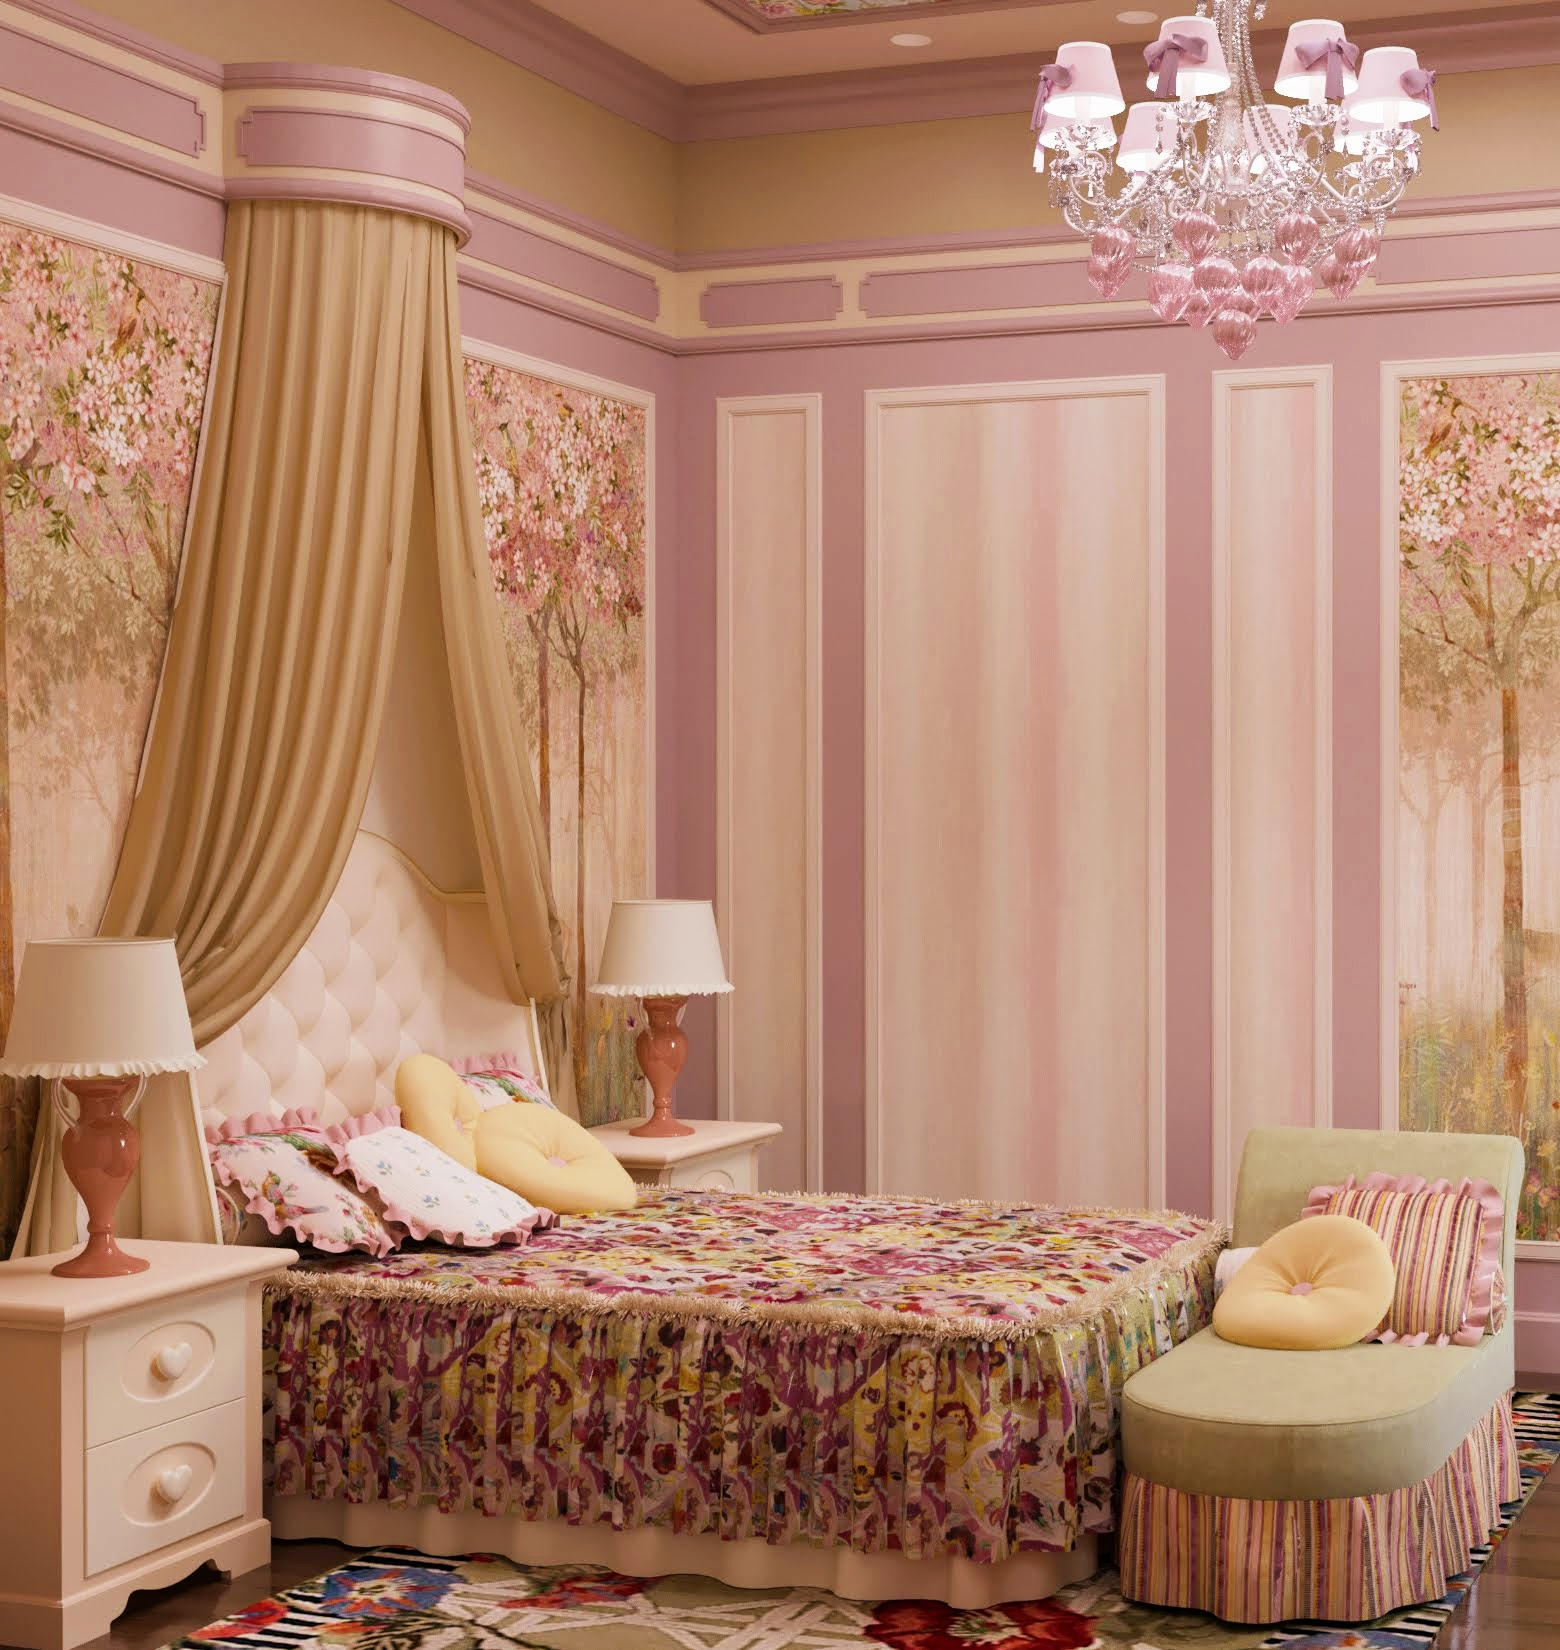 Textile design in a bedroom decoration